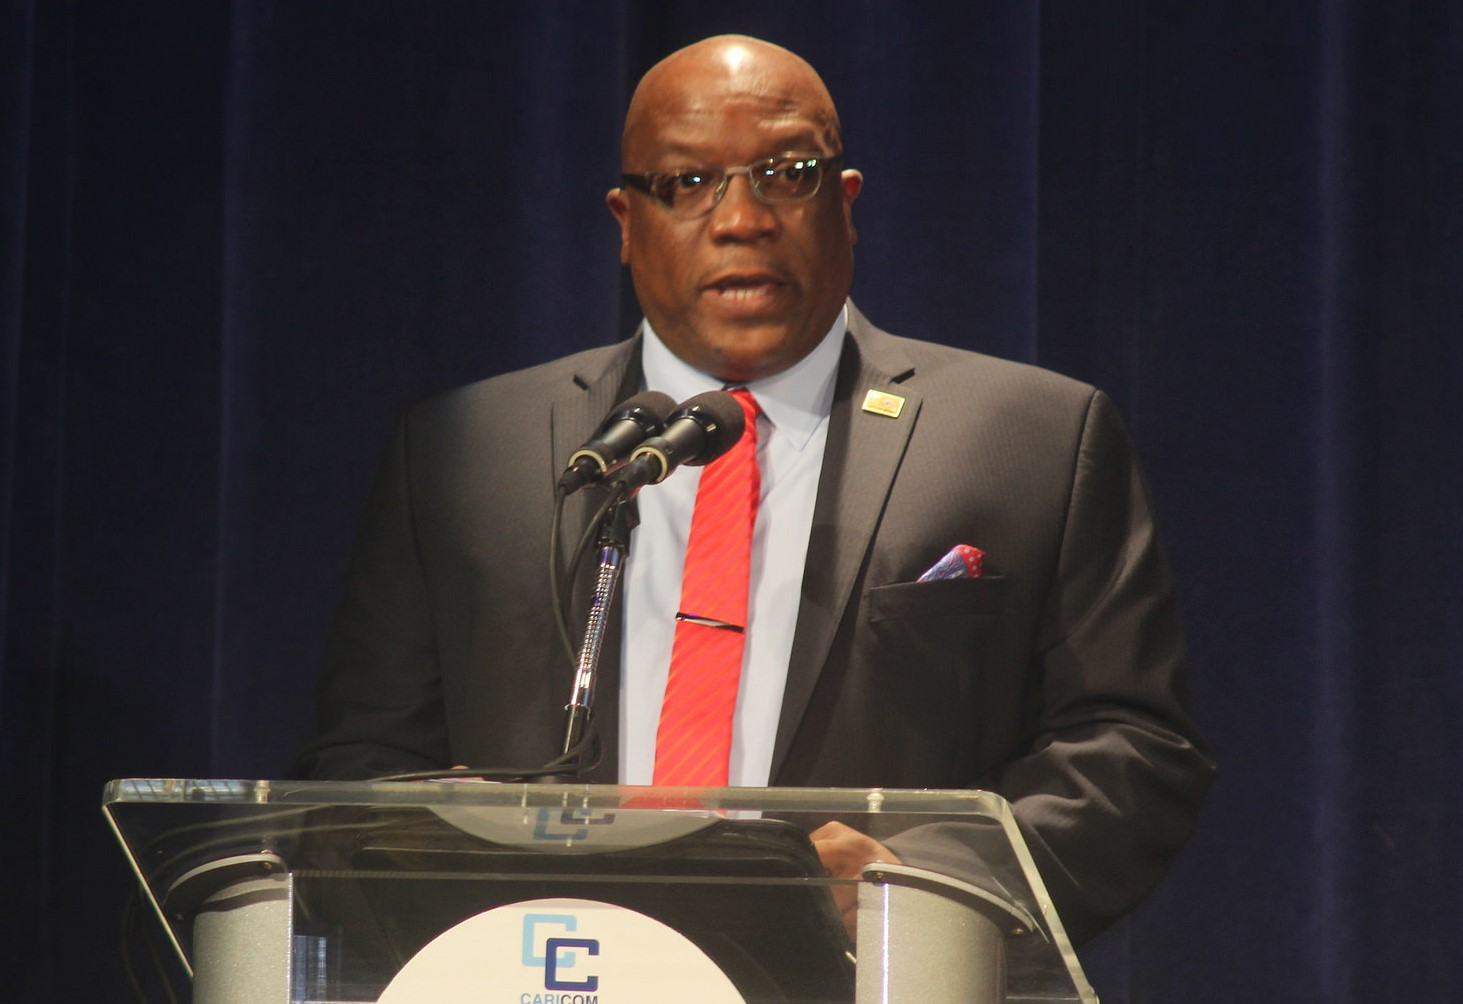 Prime Minister Dr Timothy Harris of St Kitts and Nevis